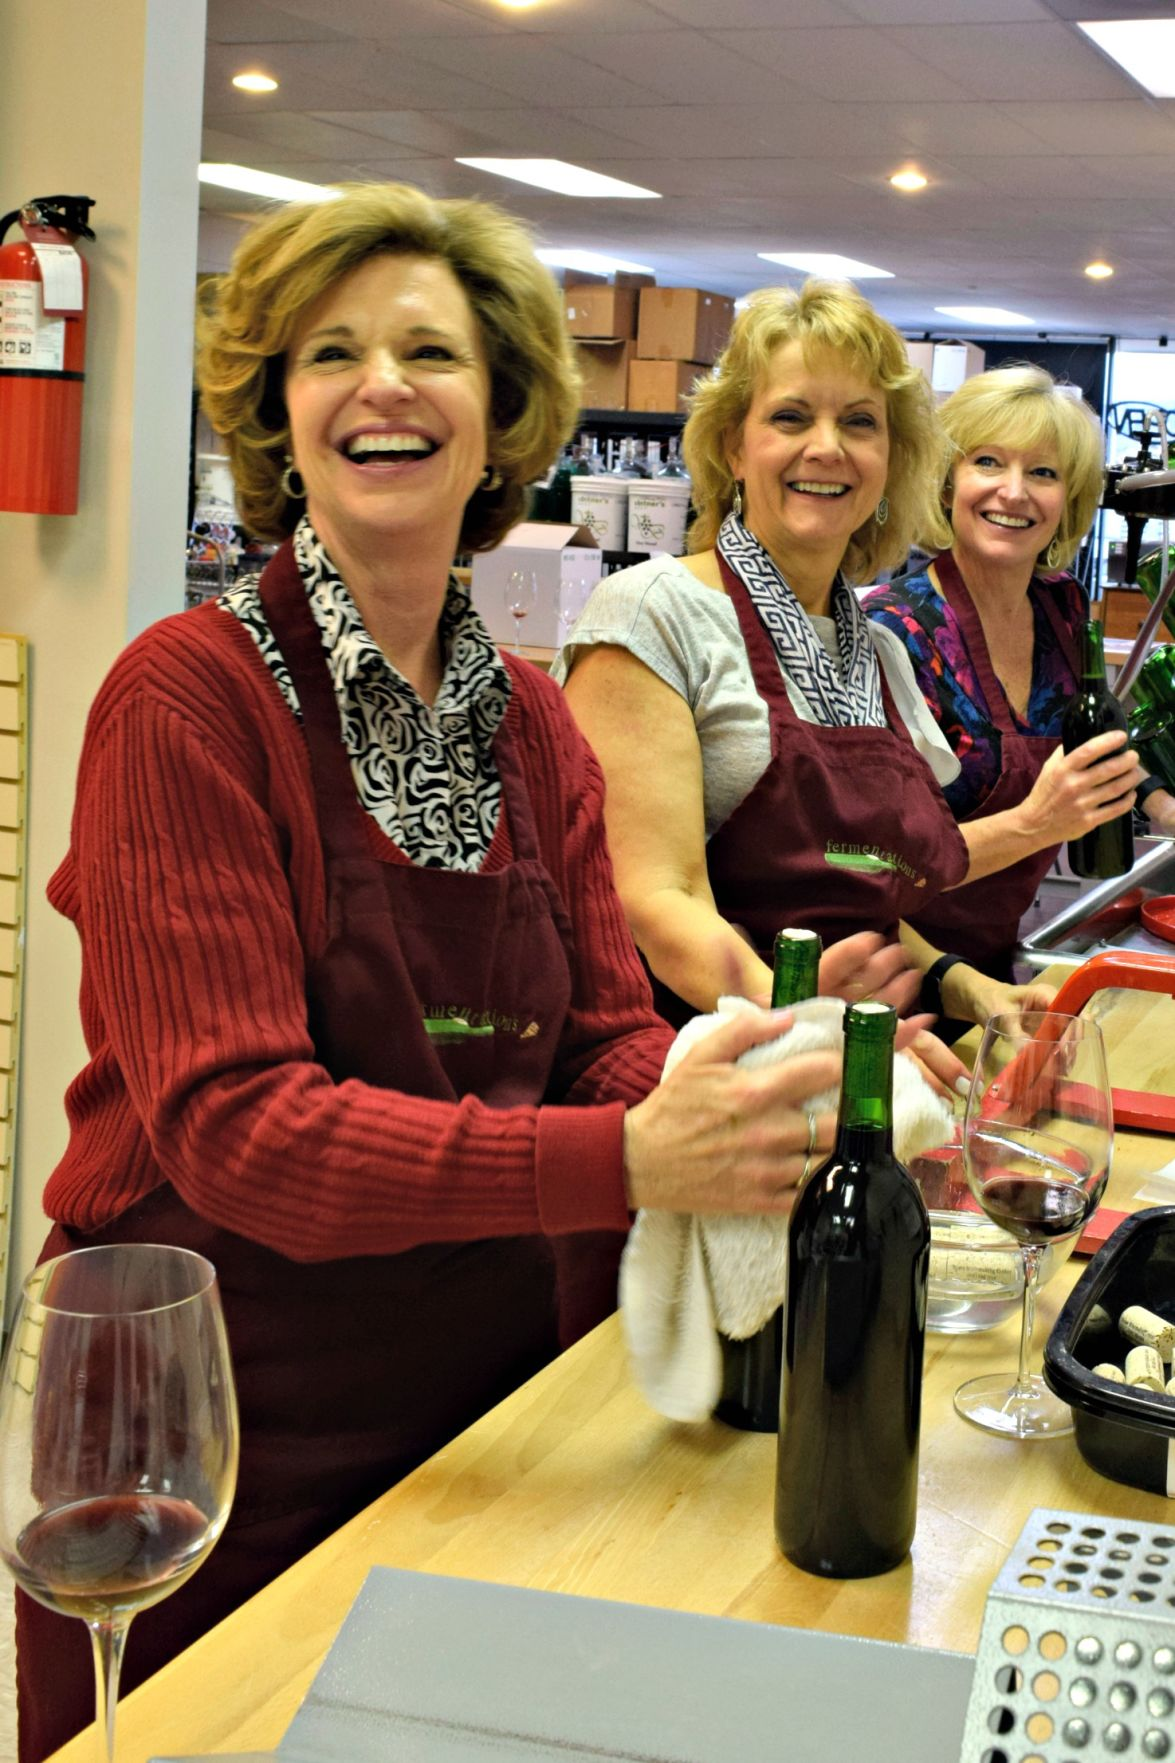 Wine lover? This may be your new favorite hobby